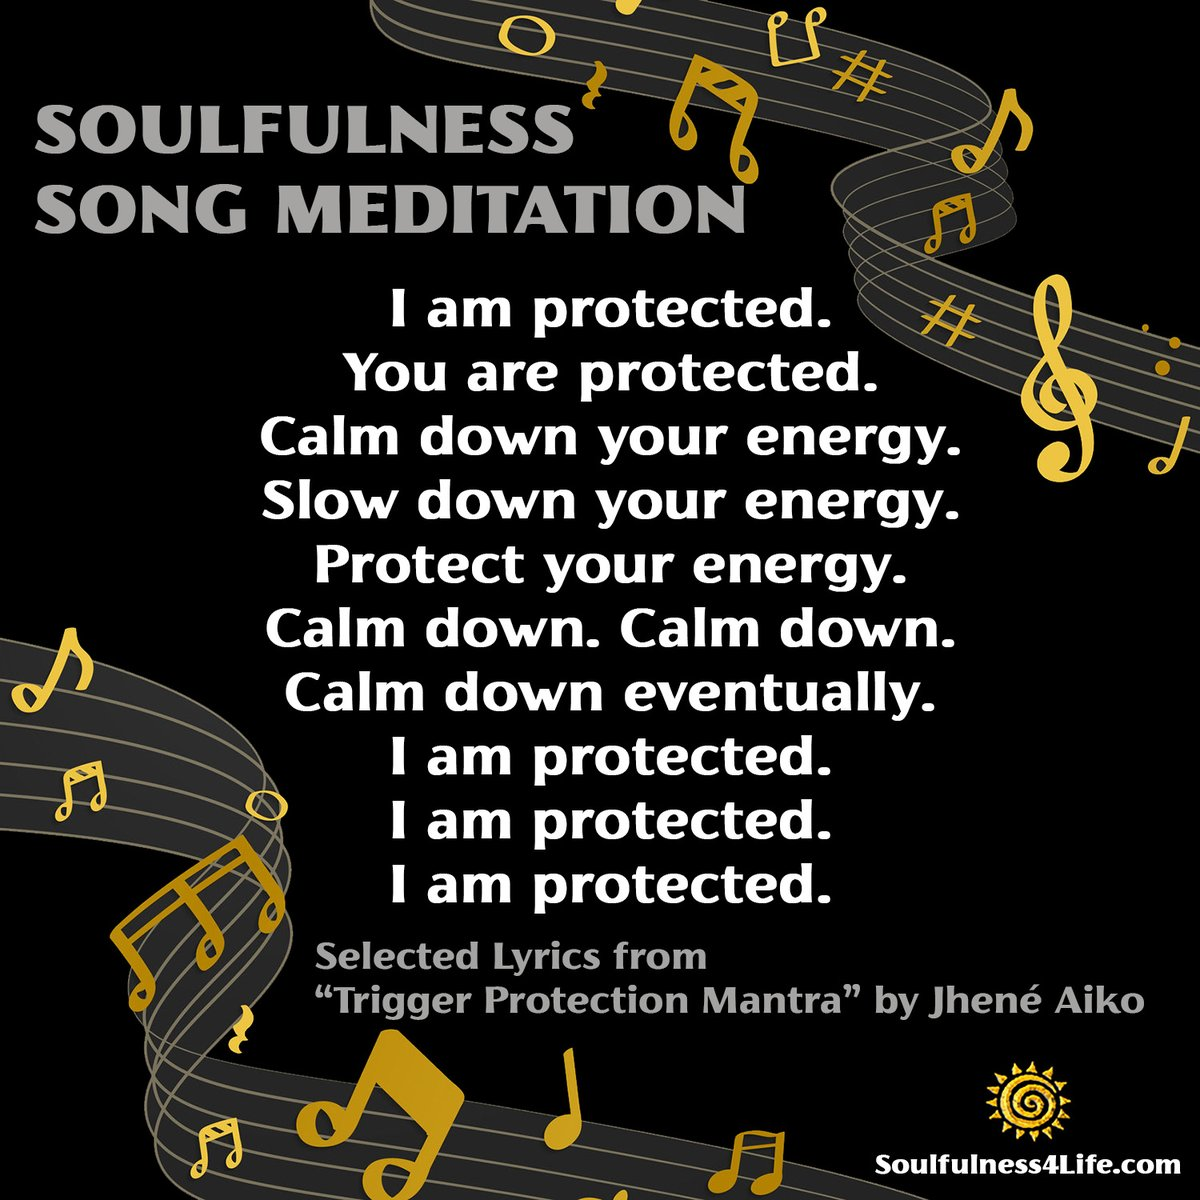 """SATURDAY SOULFULNESS: Trigger Protection Mantra by Jhené Aiko  SOULfirmation: """"I am calm, I am protected"""" https://t.co/O2xkrCWVZc  #meditation #mindfulness #healing #protection #energy #innerpeace #calm  #calmdown #anxiety #fear #wellness #stressmanagement https://t.co/PRXe64Mlhv https://t.co/DrjDlopeop"""